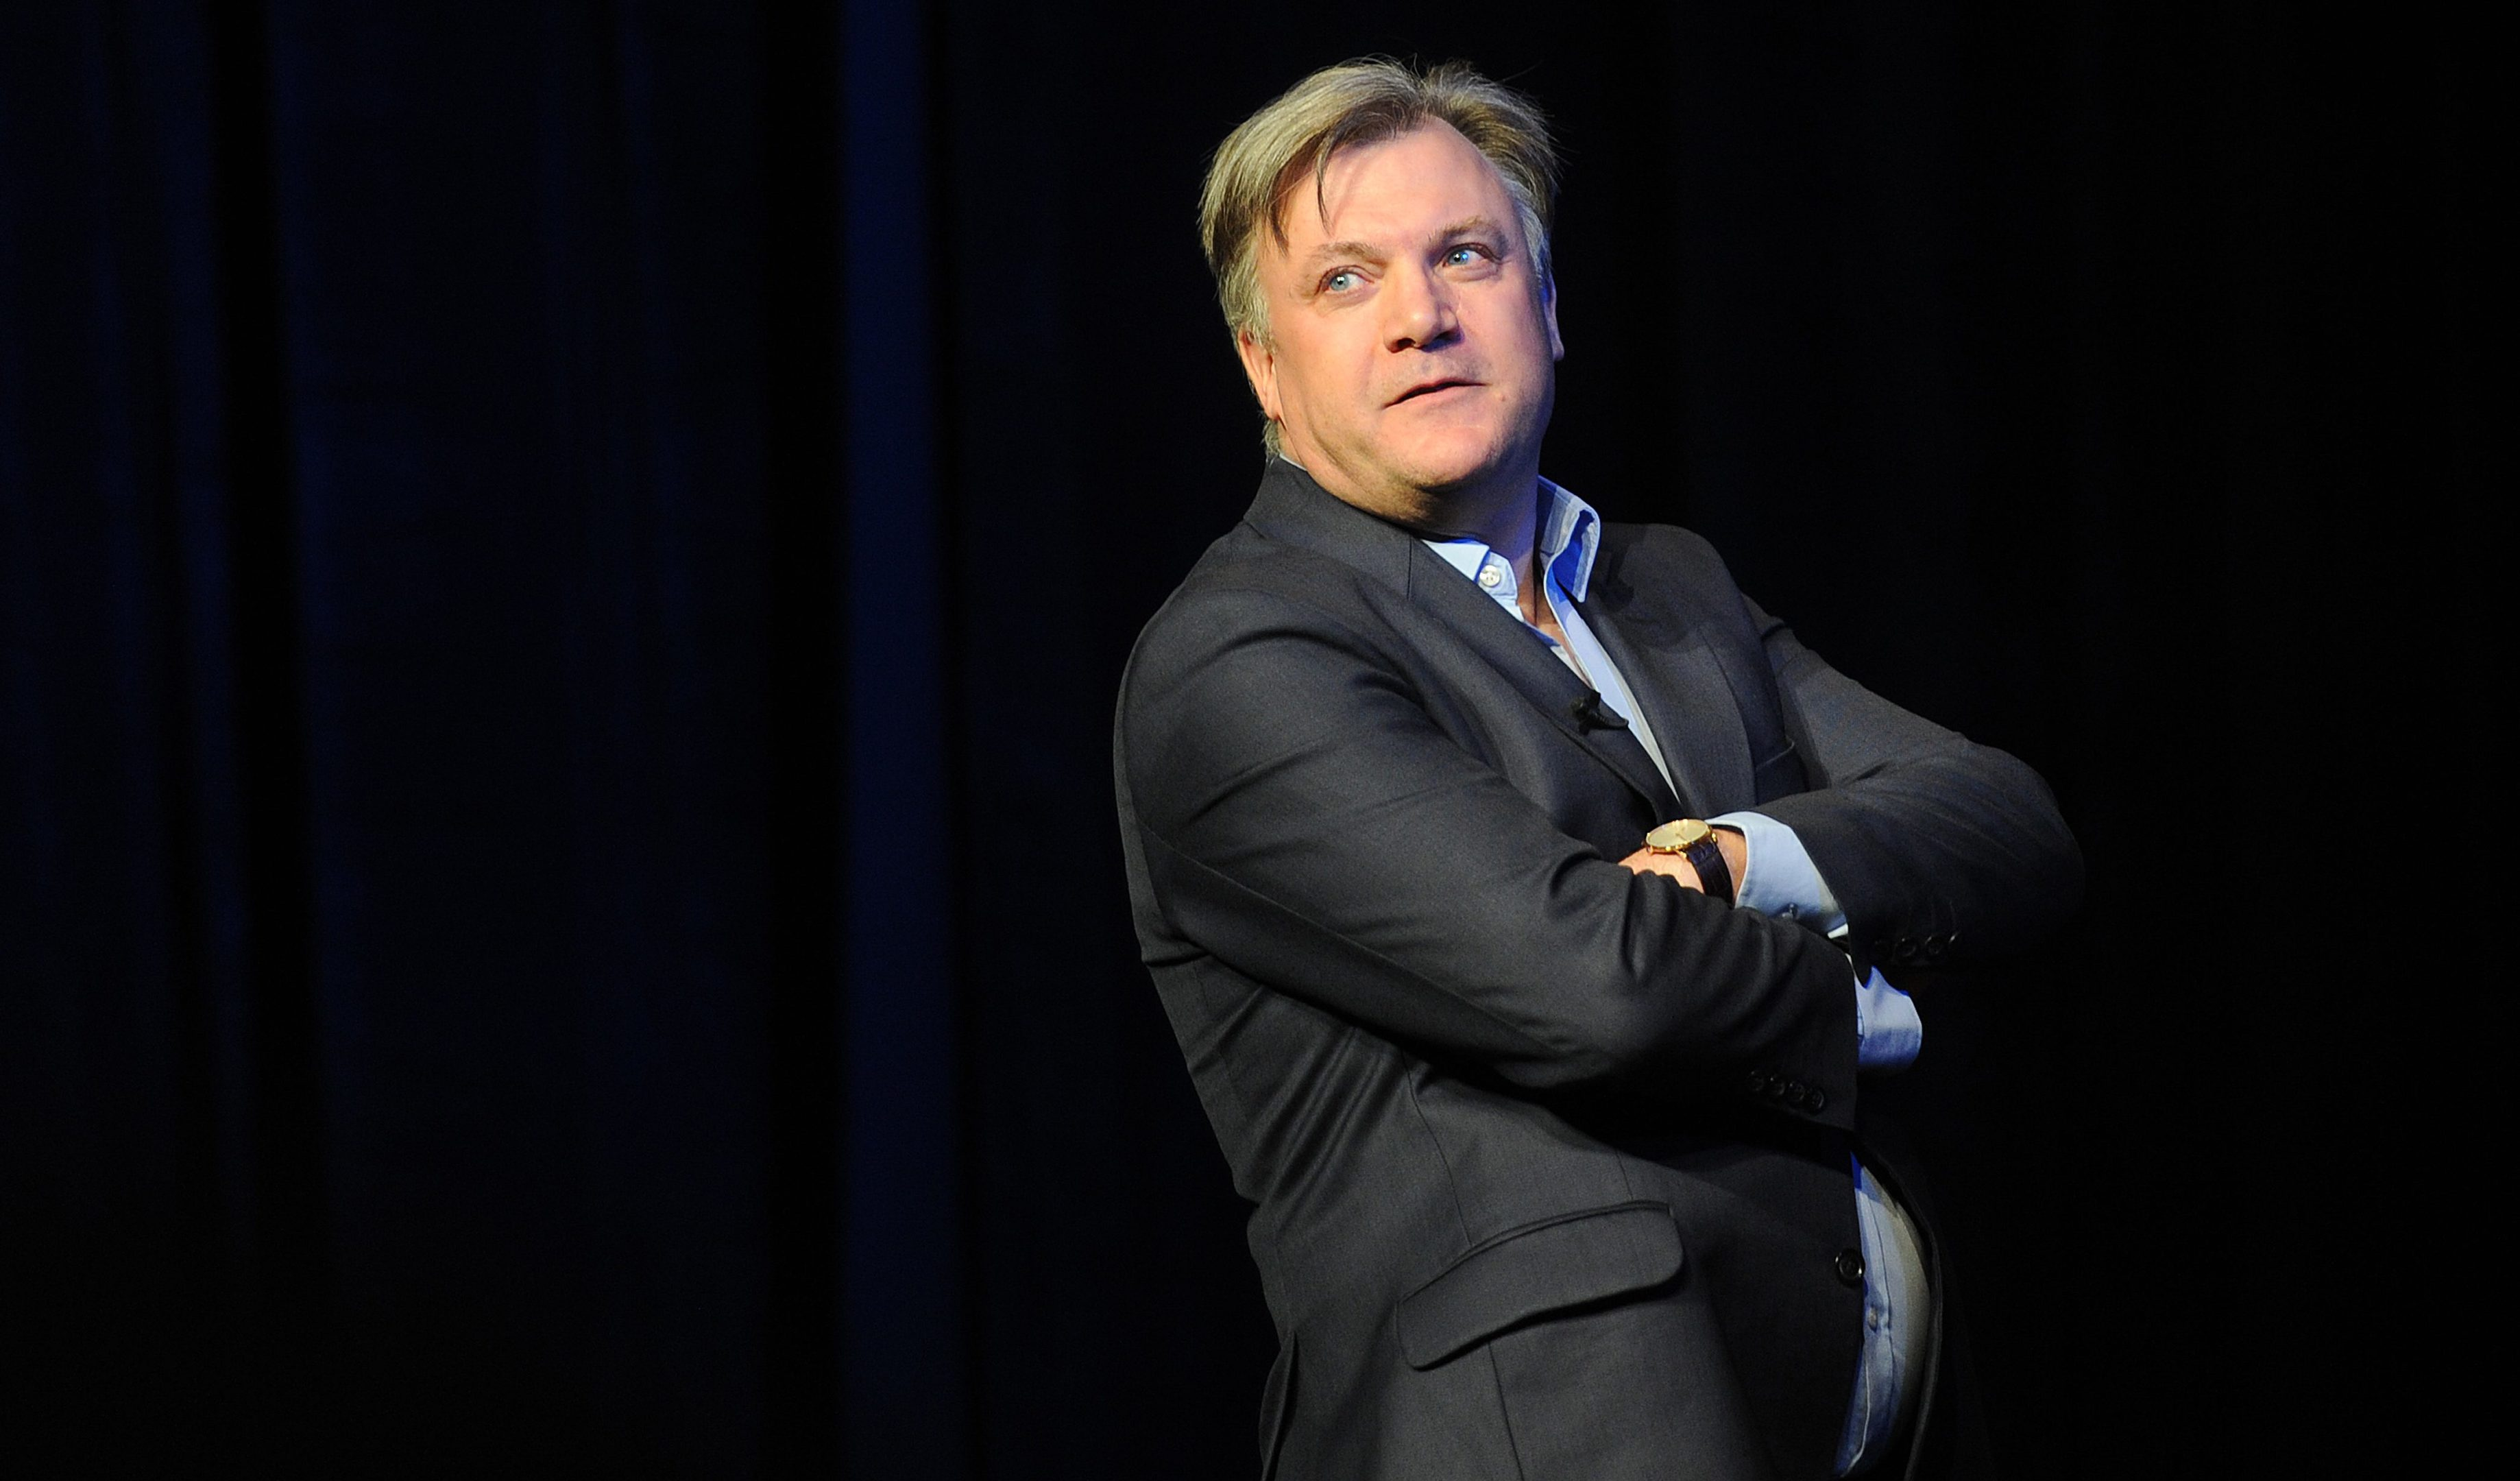 Ed Balls on stage at the Adam Smith Theatre during the Strictly Smith lecture.